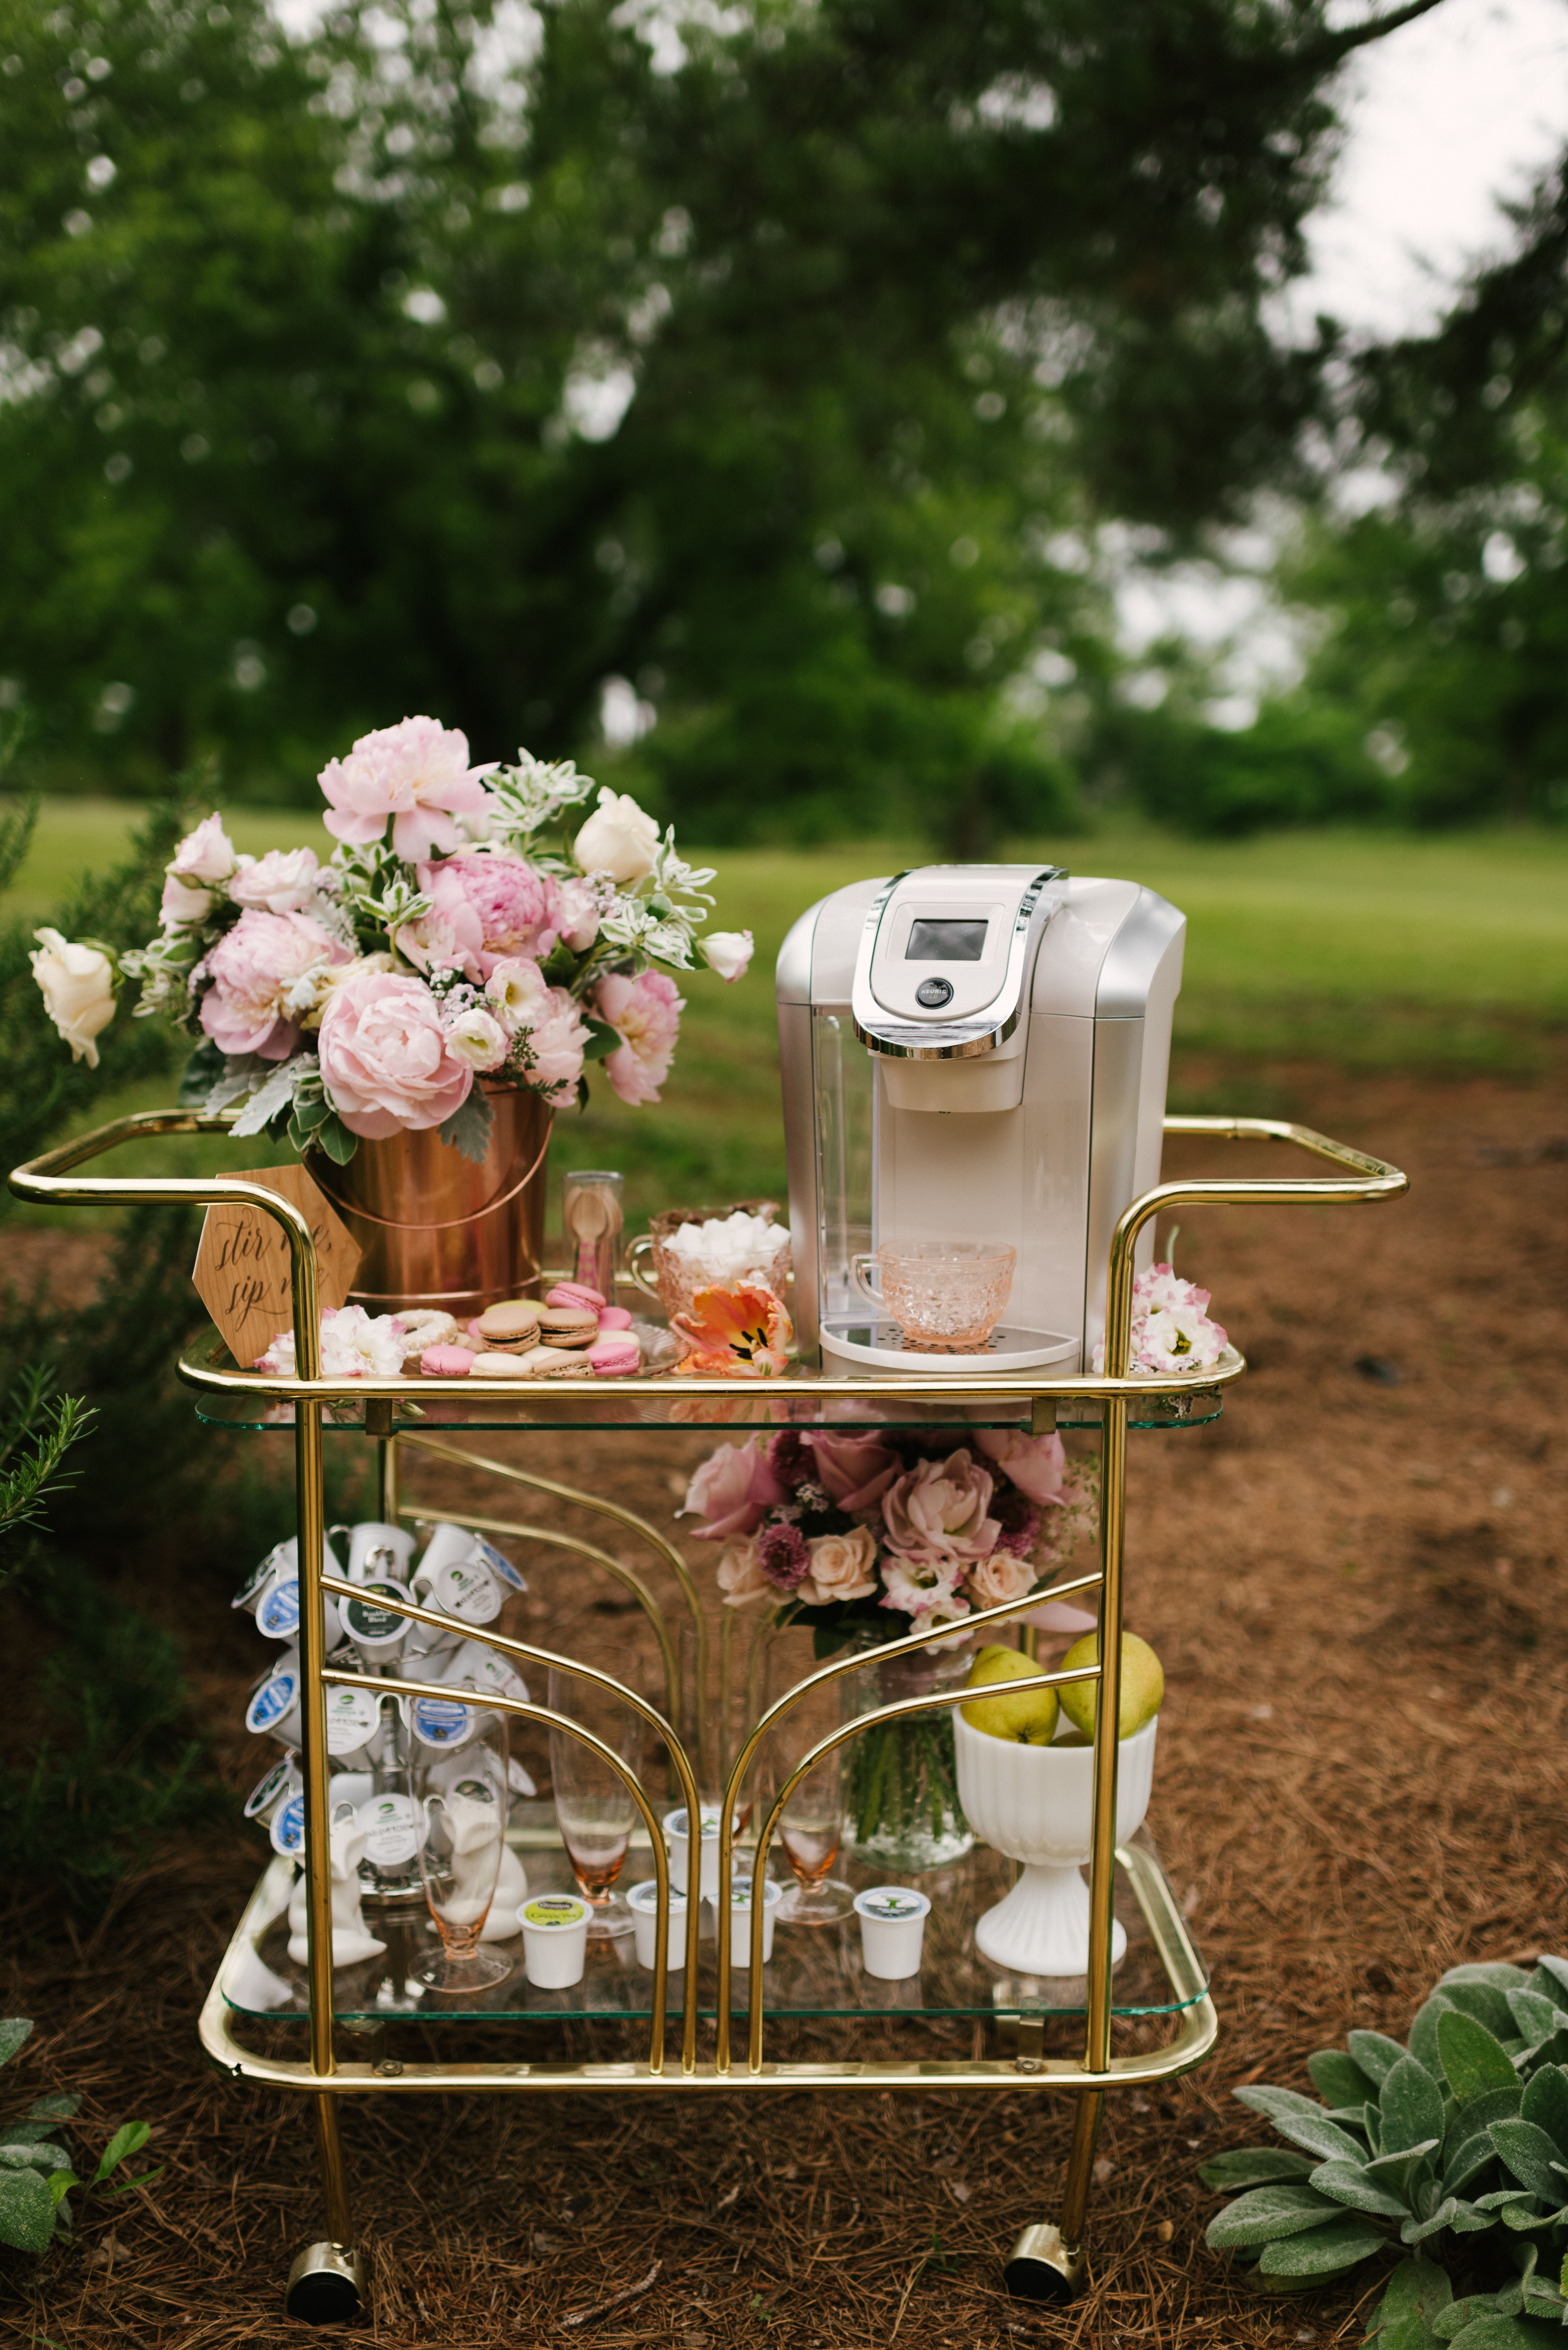 Coffee Bar Ideas For Party Create A Whimsical Keurig Coffee Bar To Wow Your Guests At